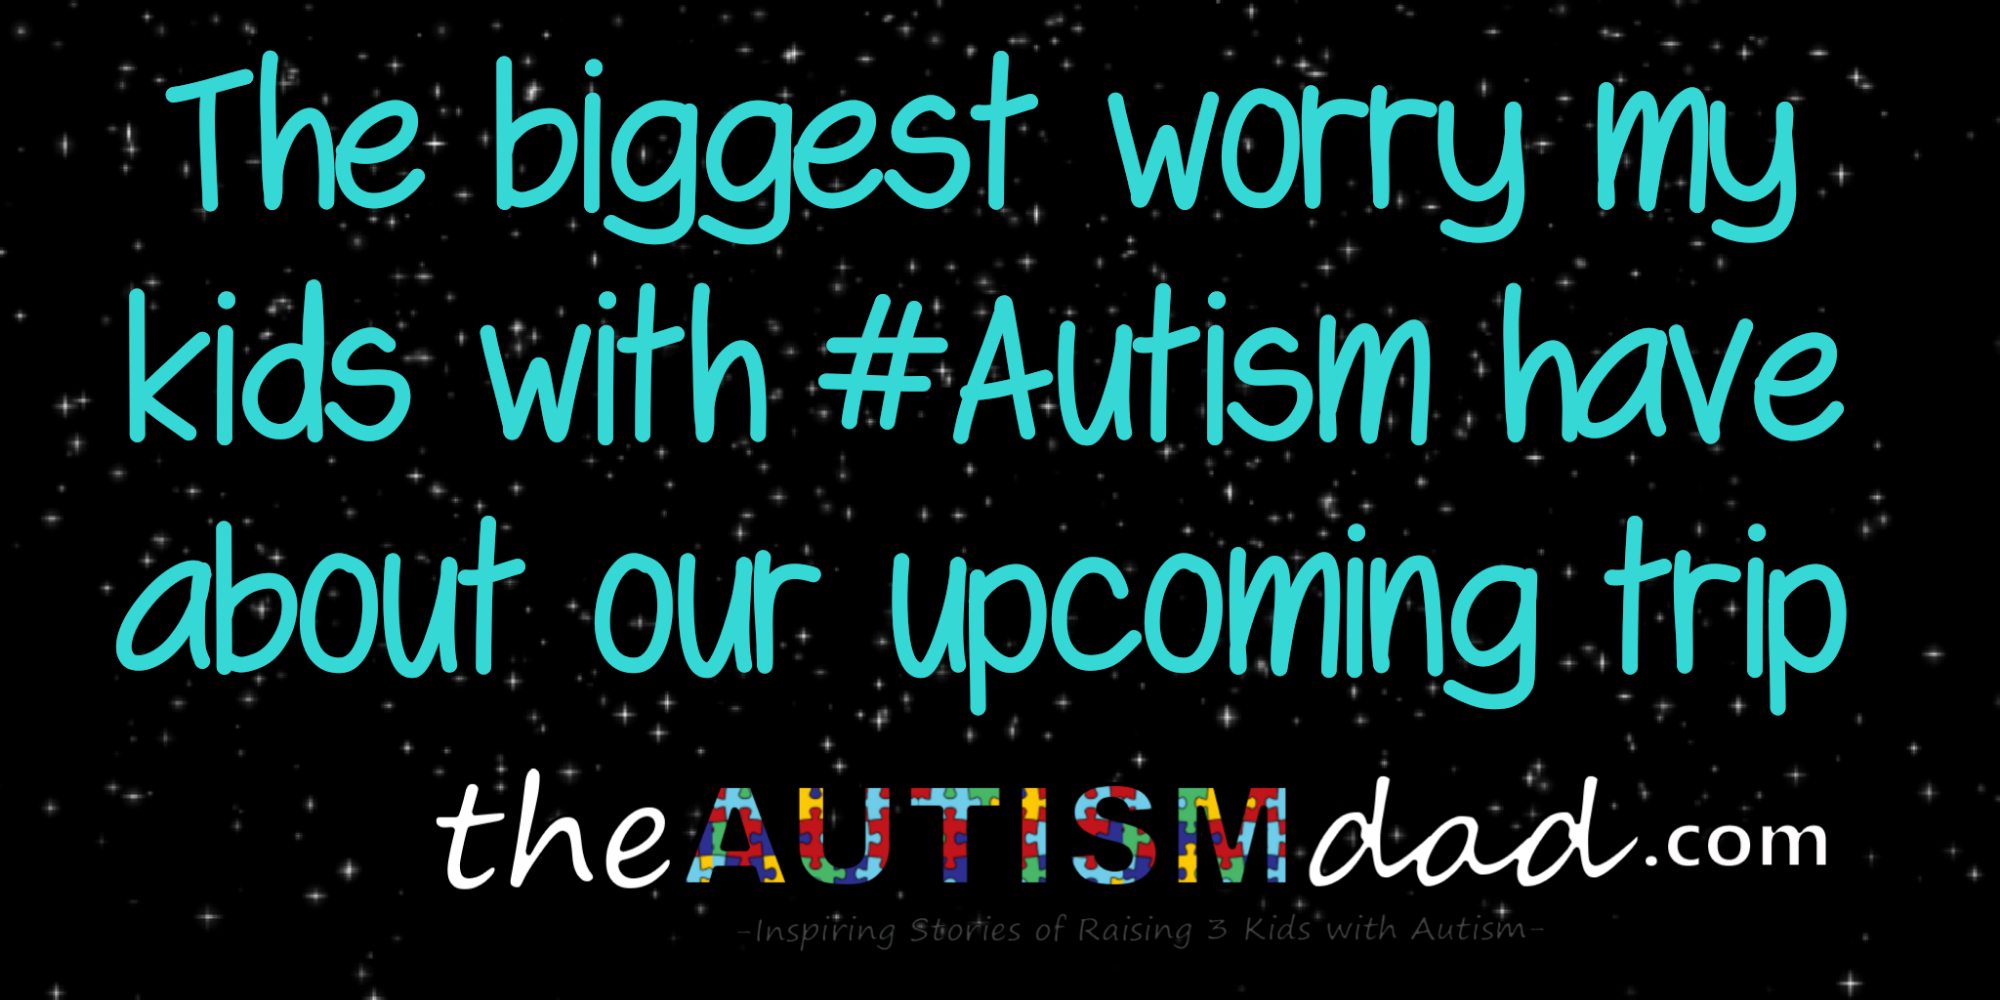 The biggest worry my kids with #Autism have about our upcoming trip